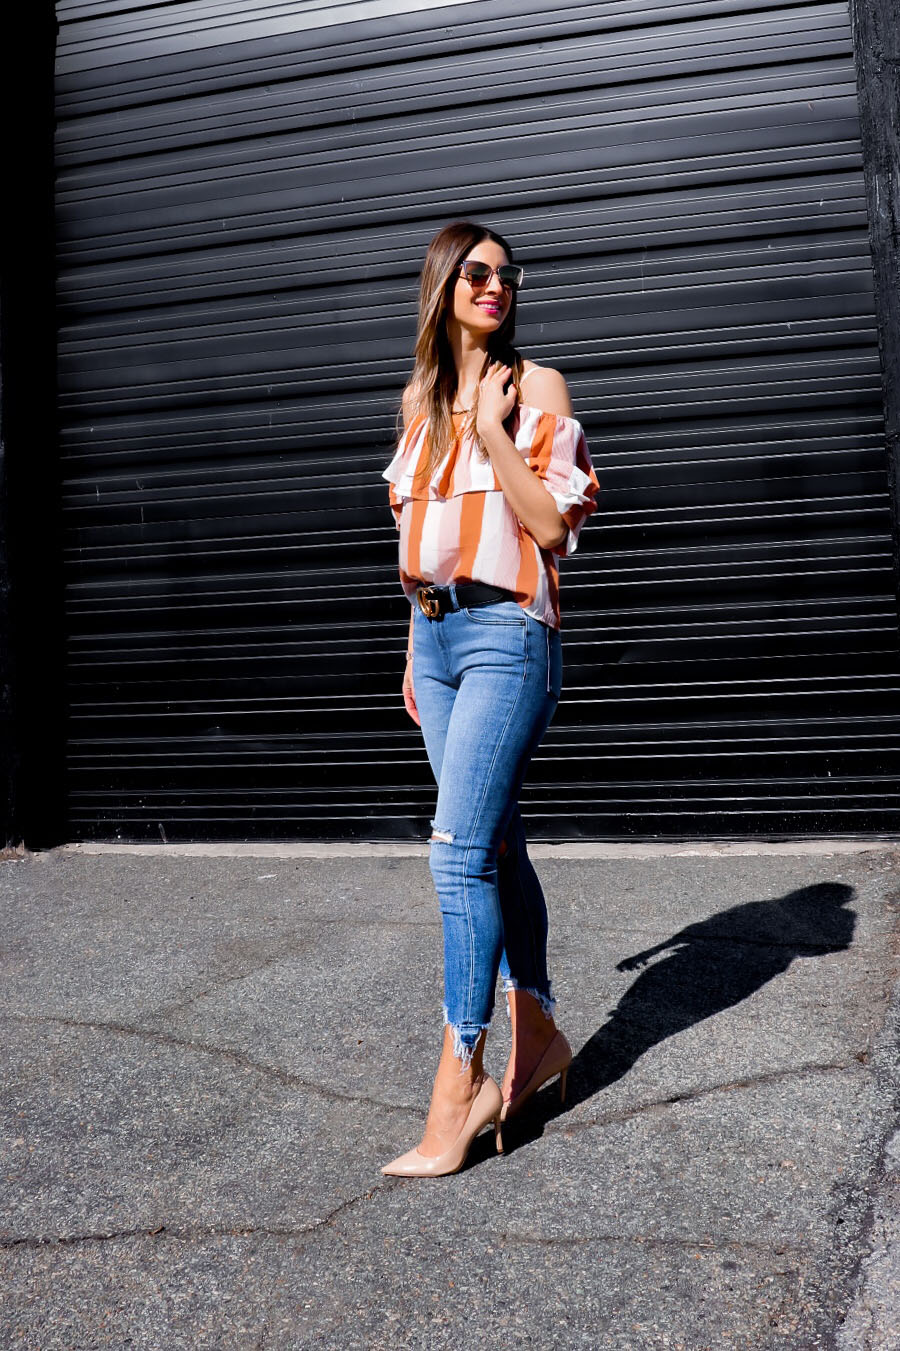 Spring ruffle top with distressed jeans